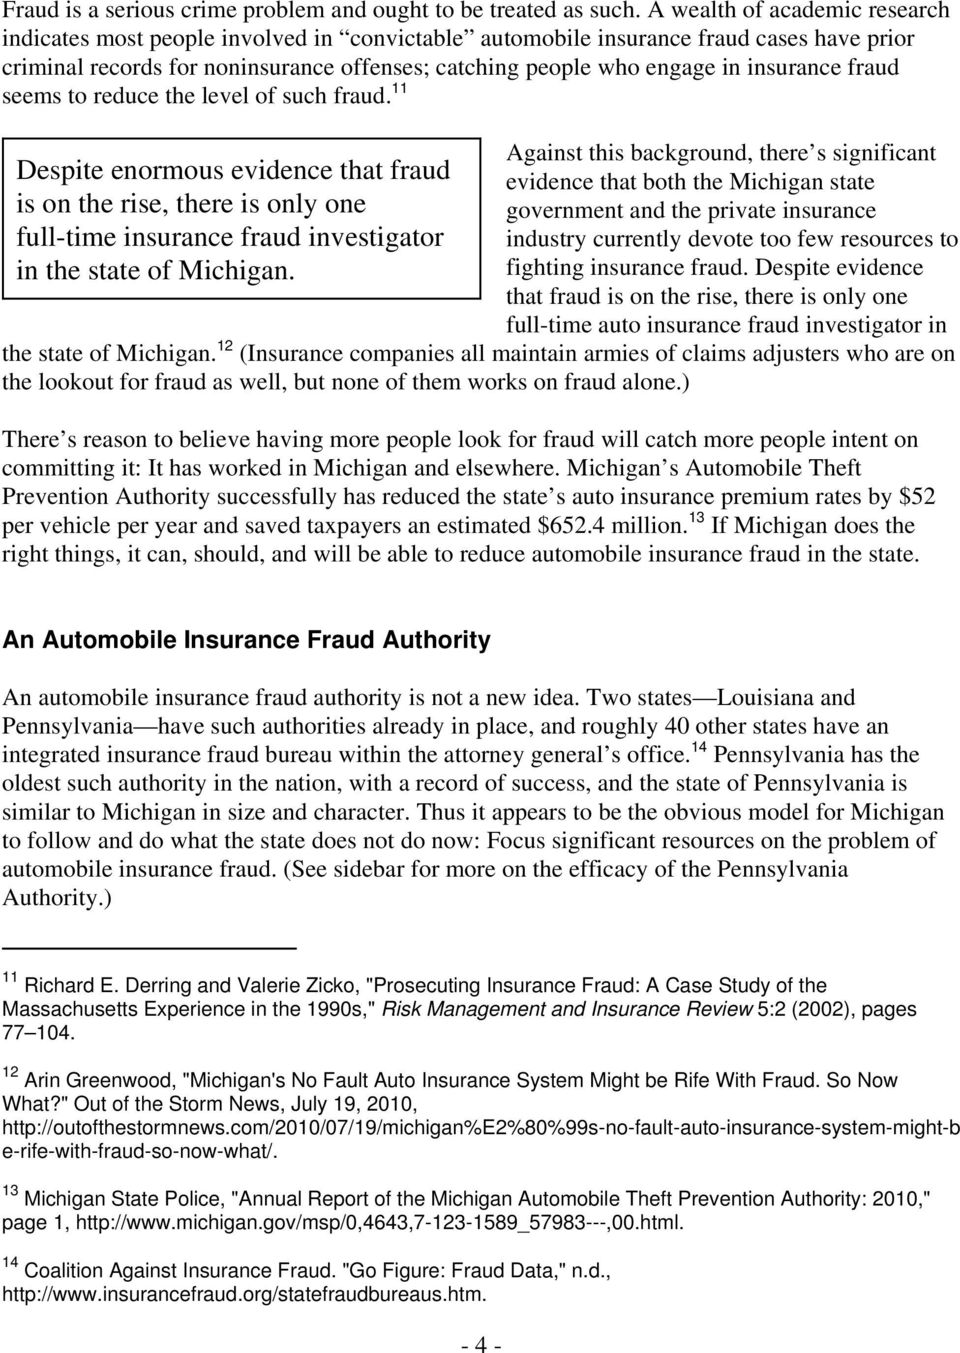 insurance fraud seems to reduce the level of such fraud. 11 Despite enormous evidence that fraud is on the rise, there is only one full-time insurance fraud investigator in the state of Michigan.